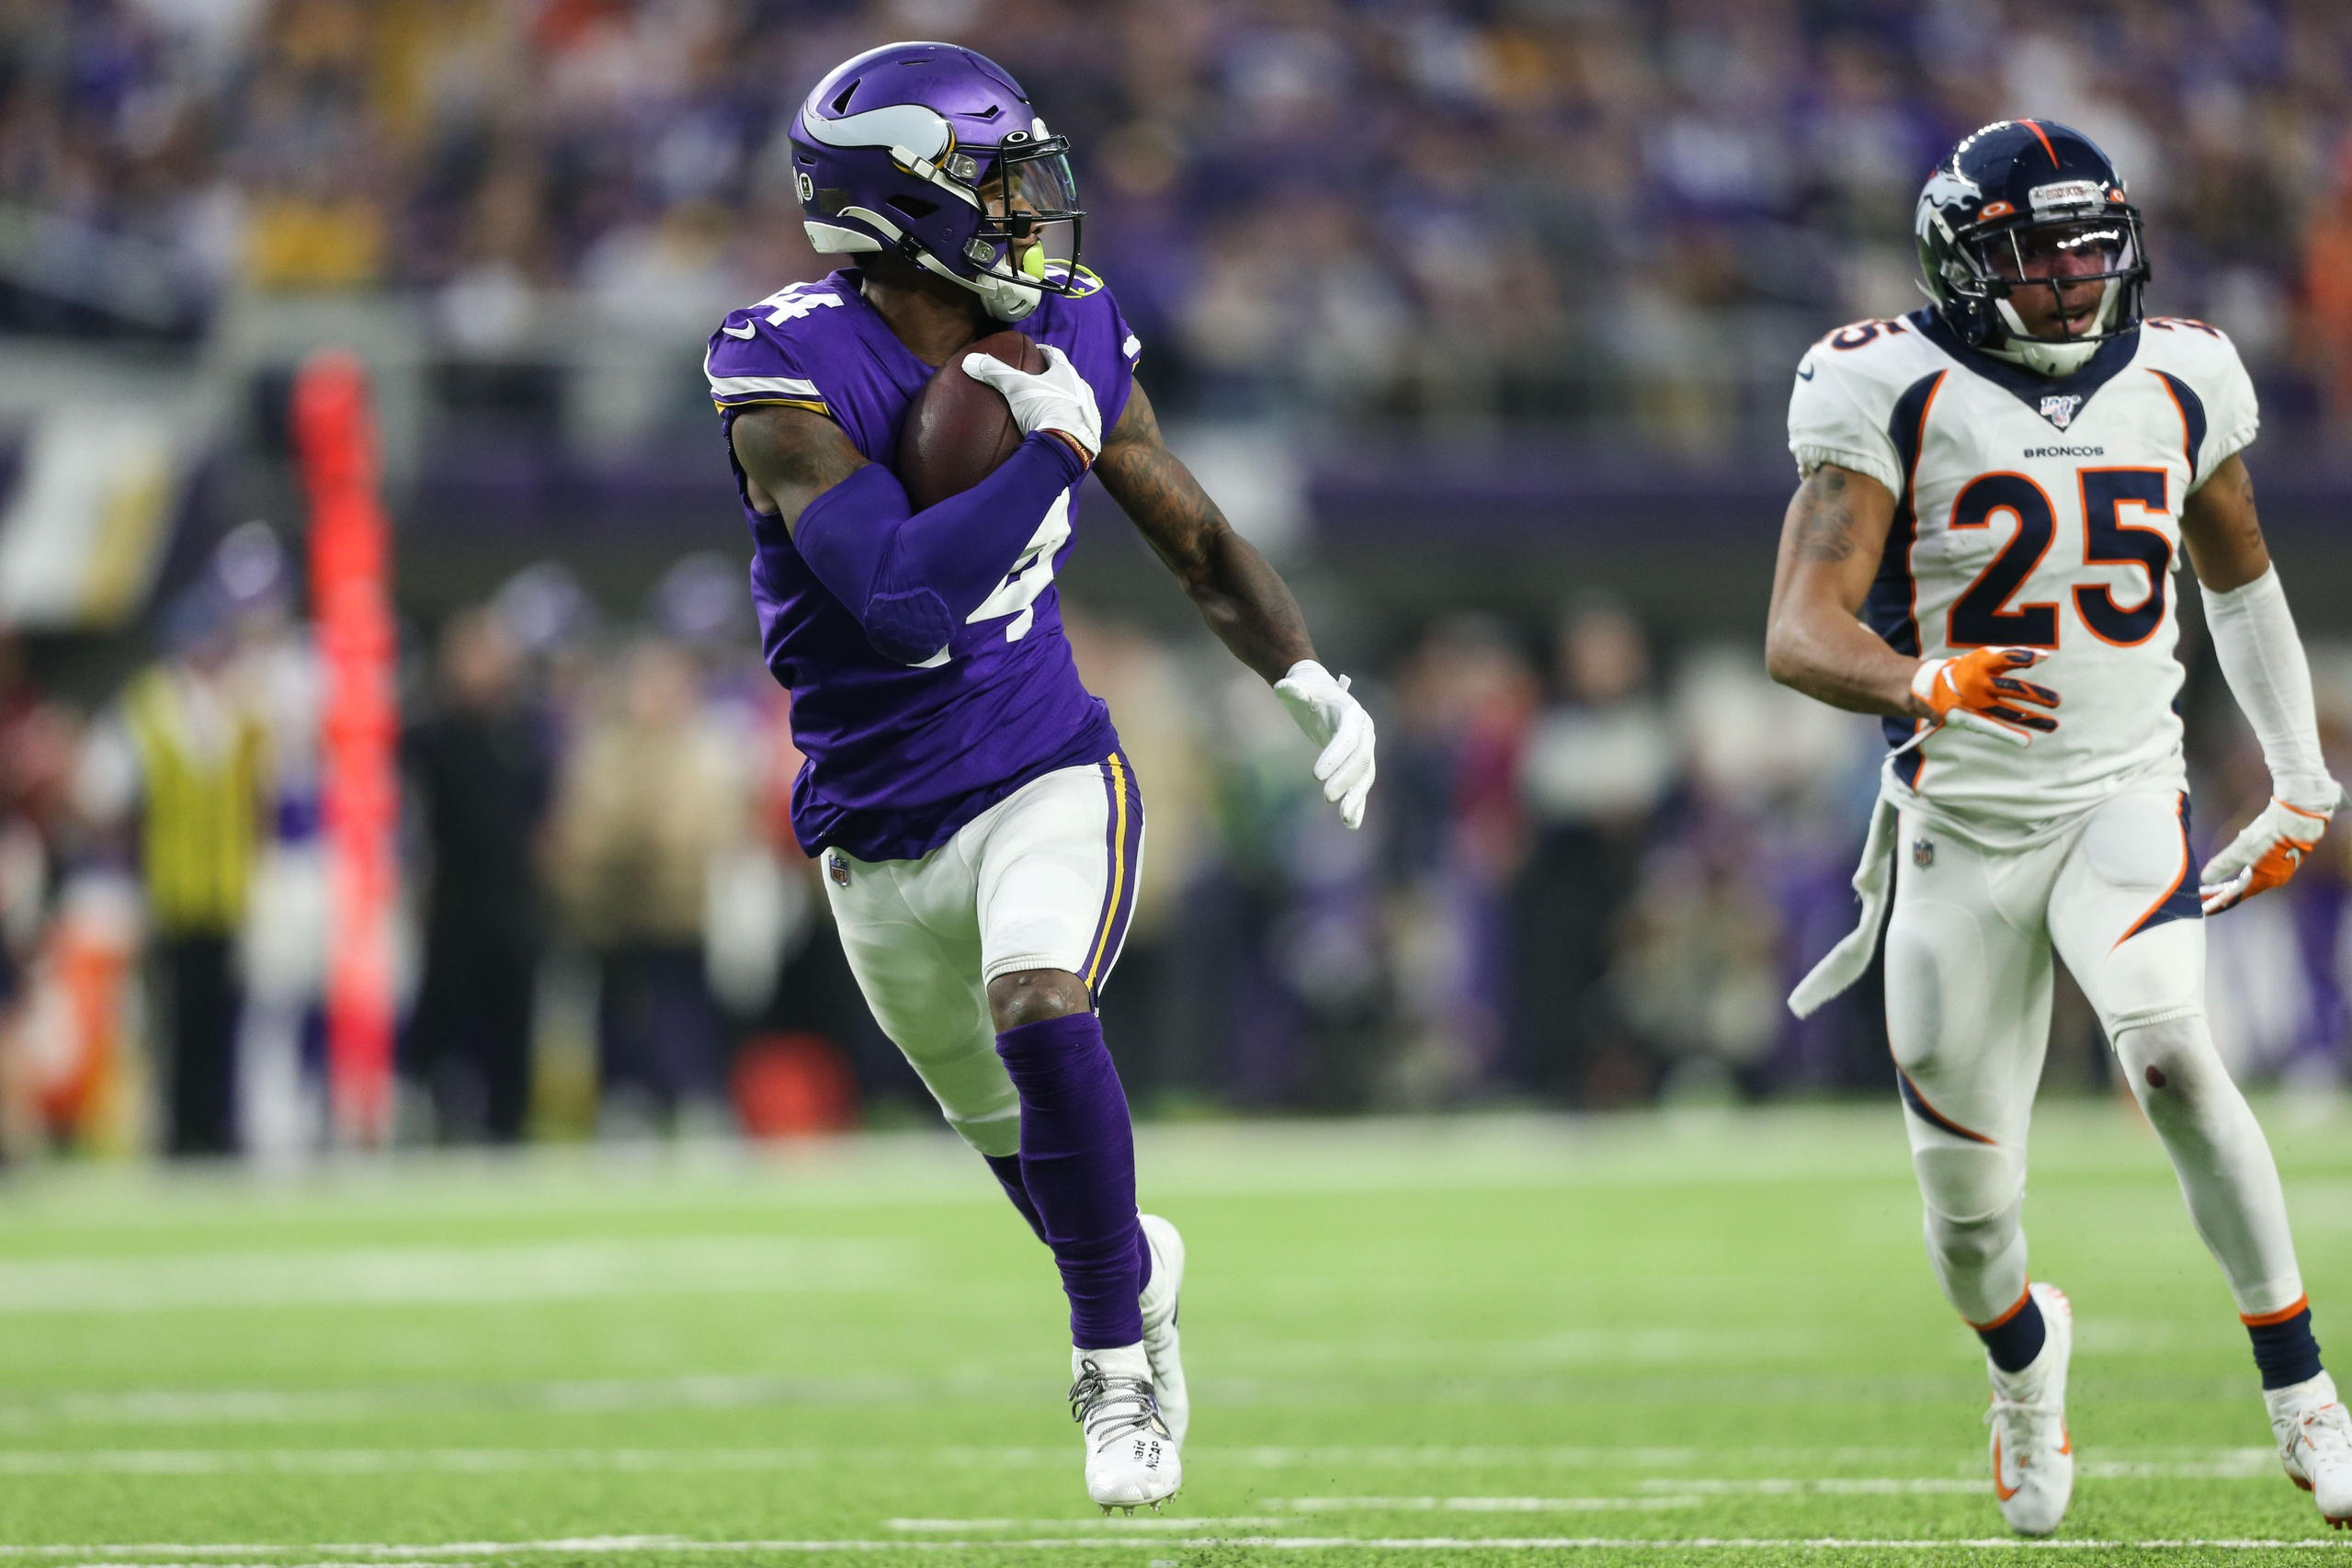 Here's why Broncos Should Absolutely Target Vikings' WR Stefon Diggs